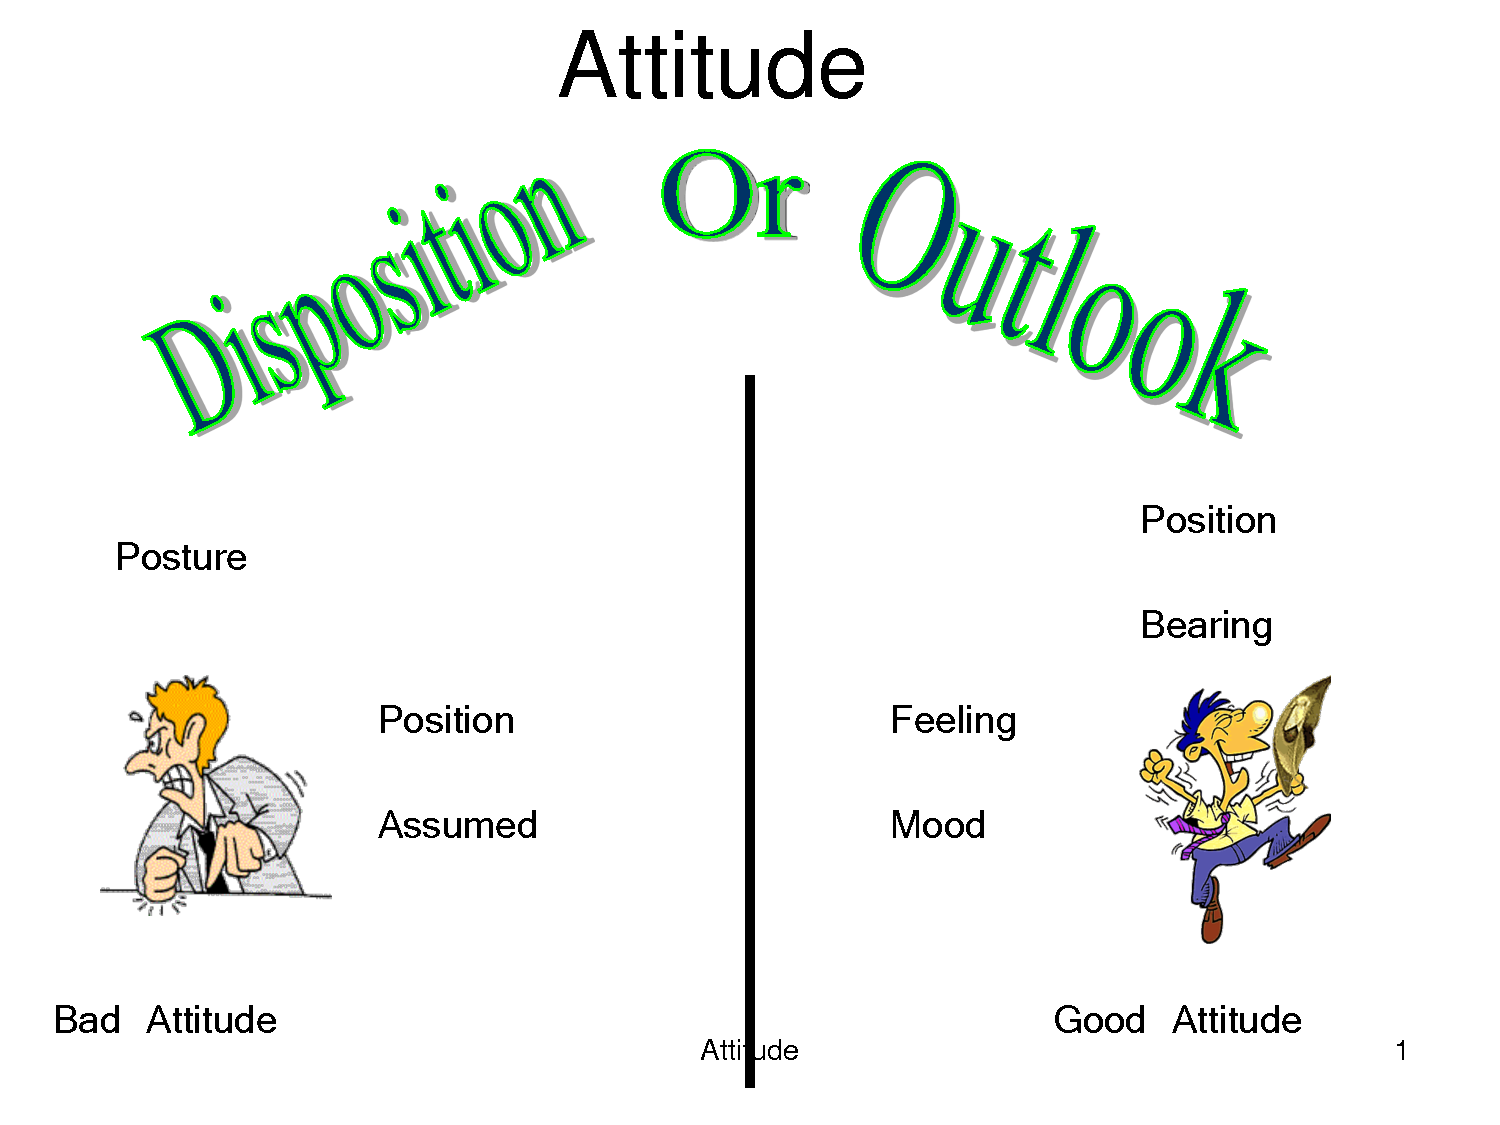 attitude at work Five attitudes that are important in workplaces by lynda moultry belcher related articles 1 [behavior vs attitude] | behavior vs attitude in employees it is important to have a helpful attitude at work.